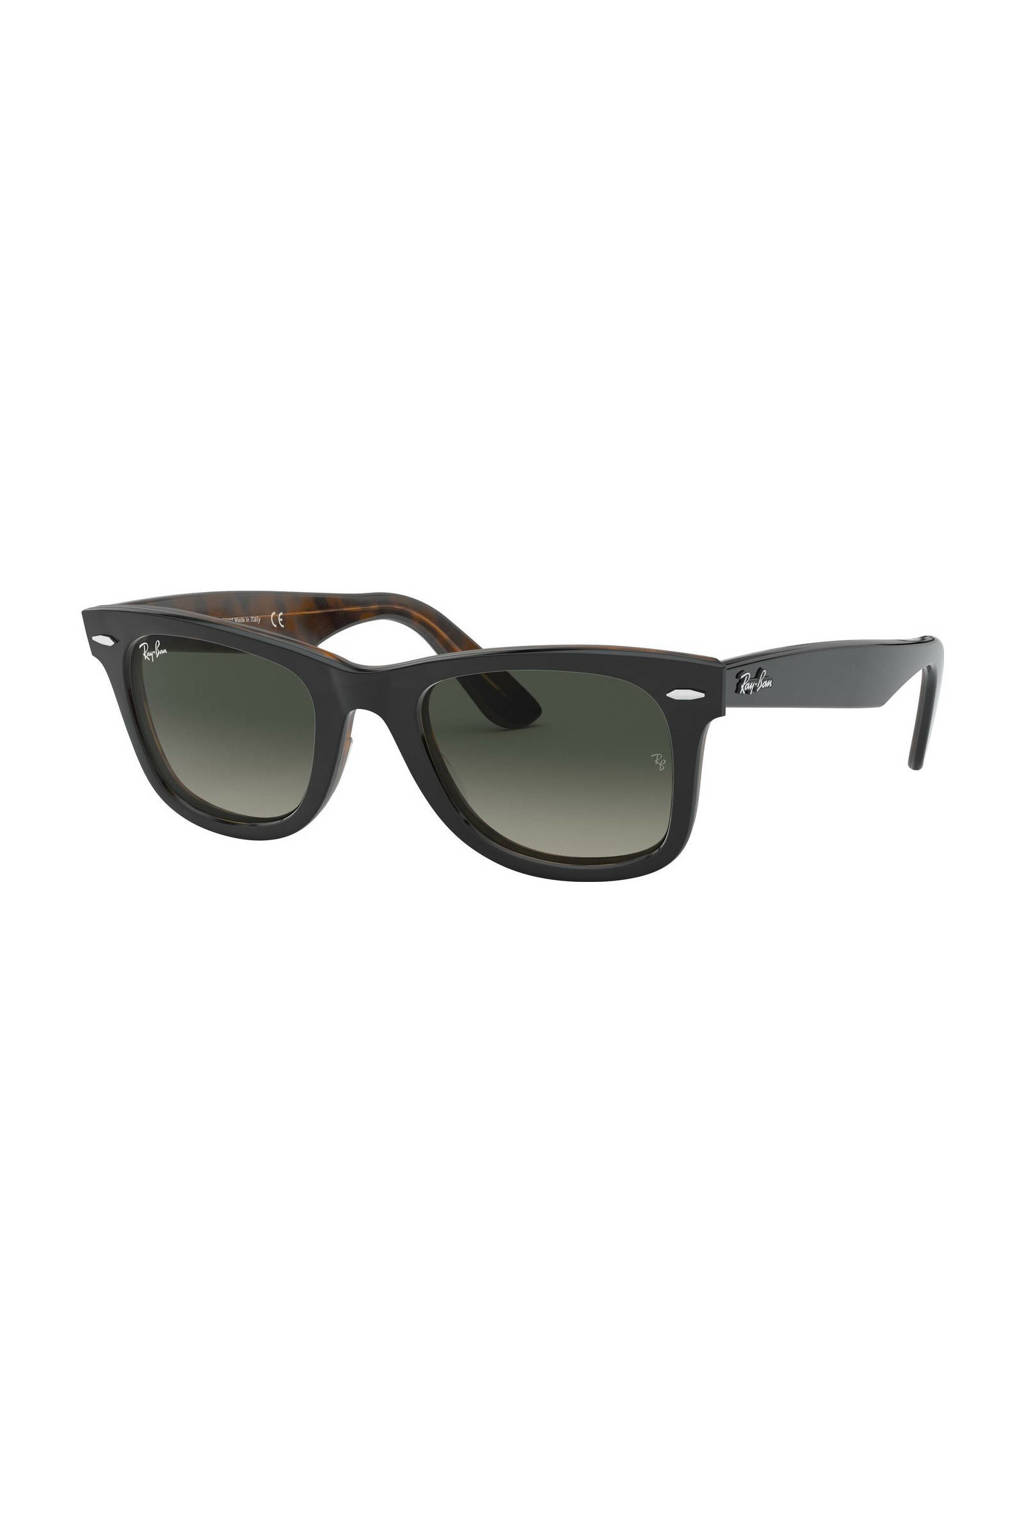 Ray-Ban zonnebril 0RB2140